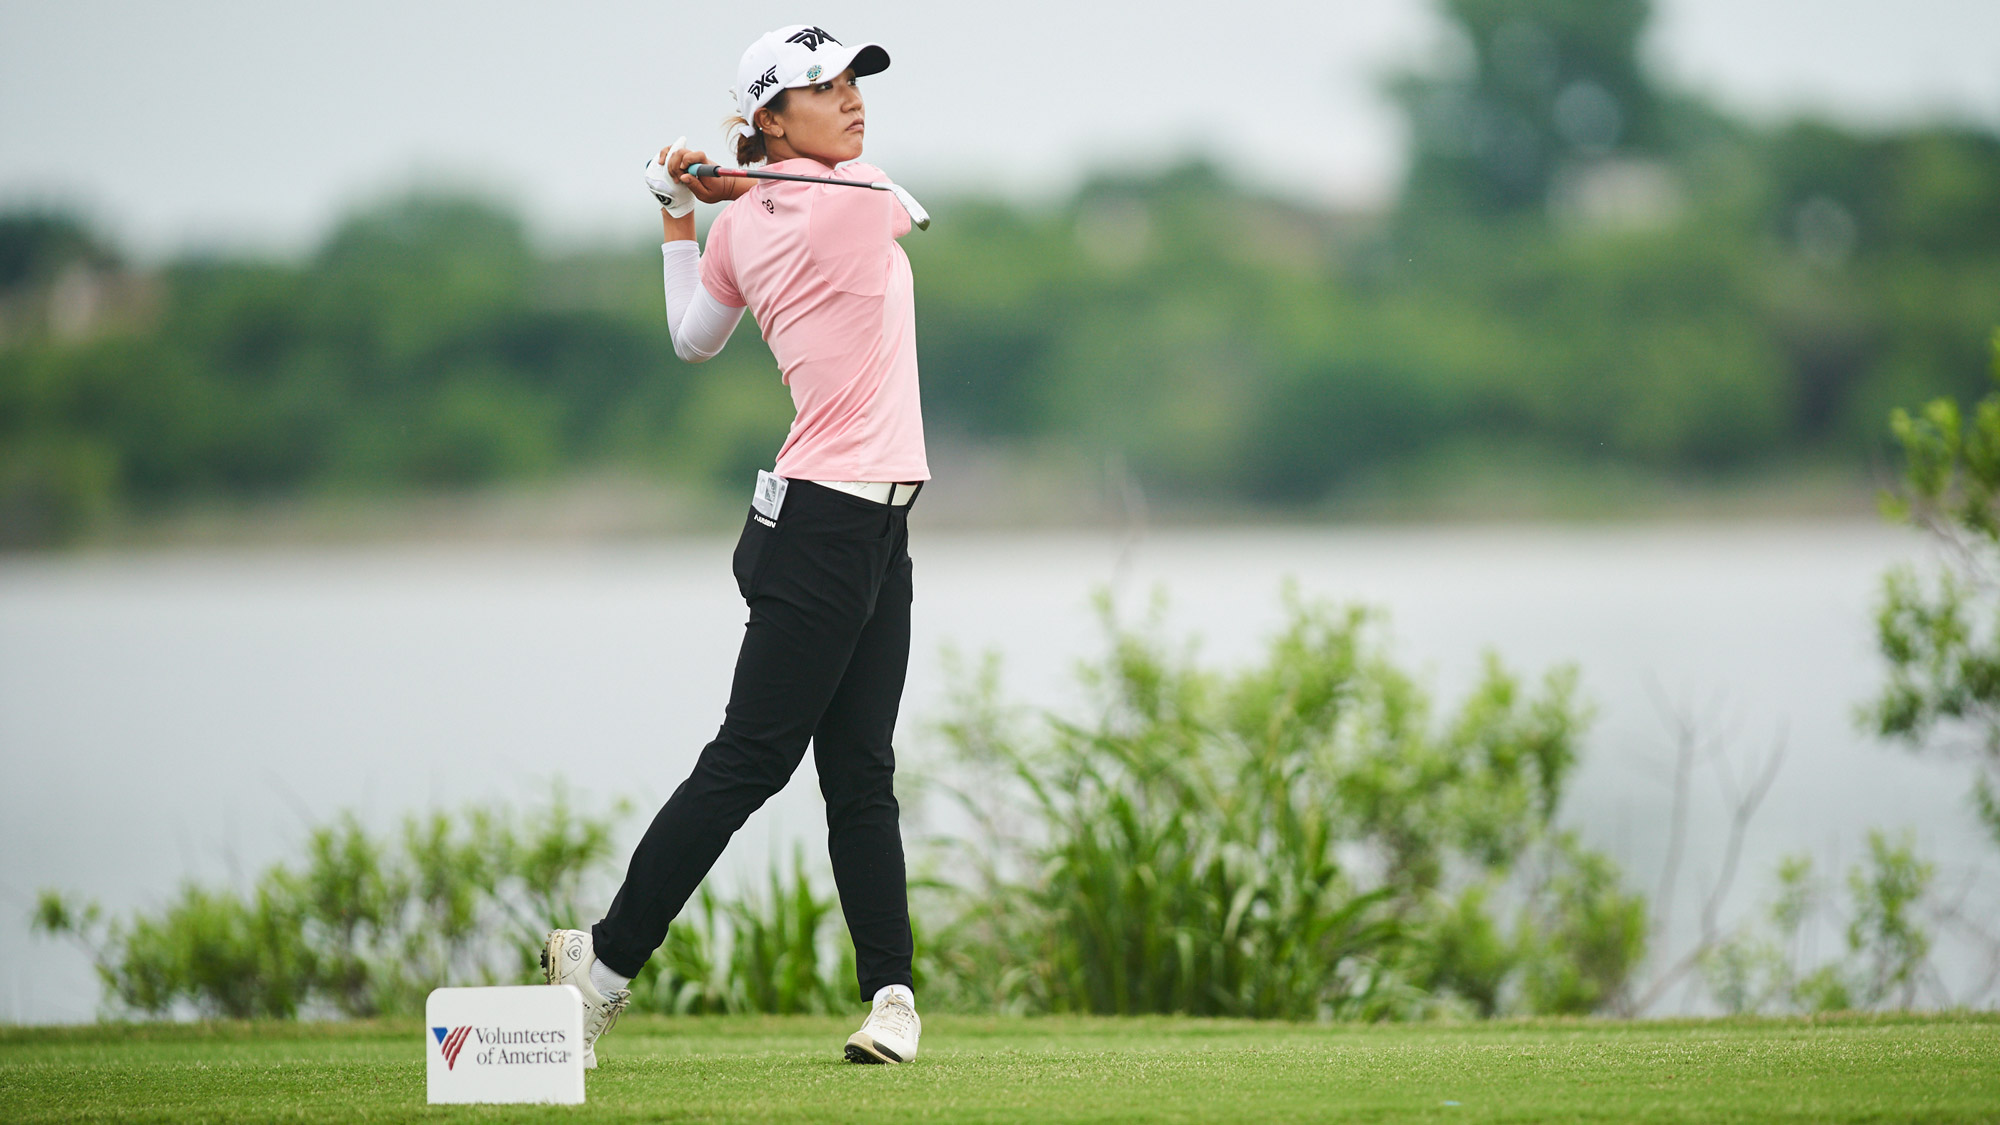 Lydia Ko Looking to Go Back-to-Back in Texas